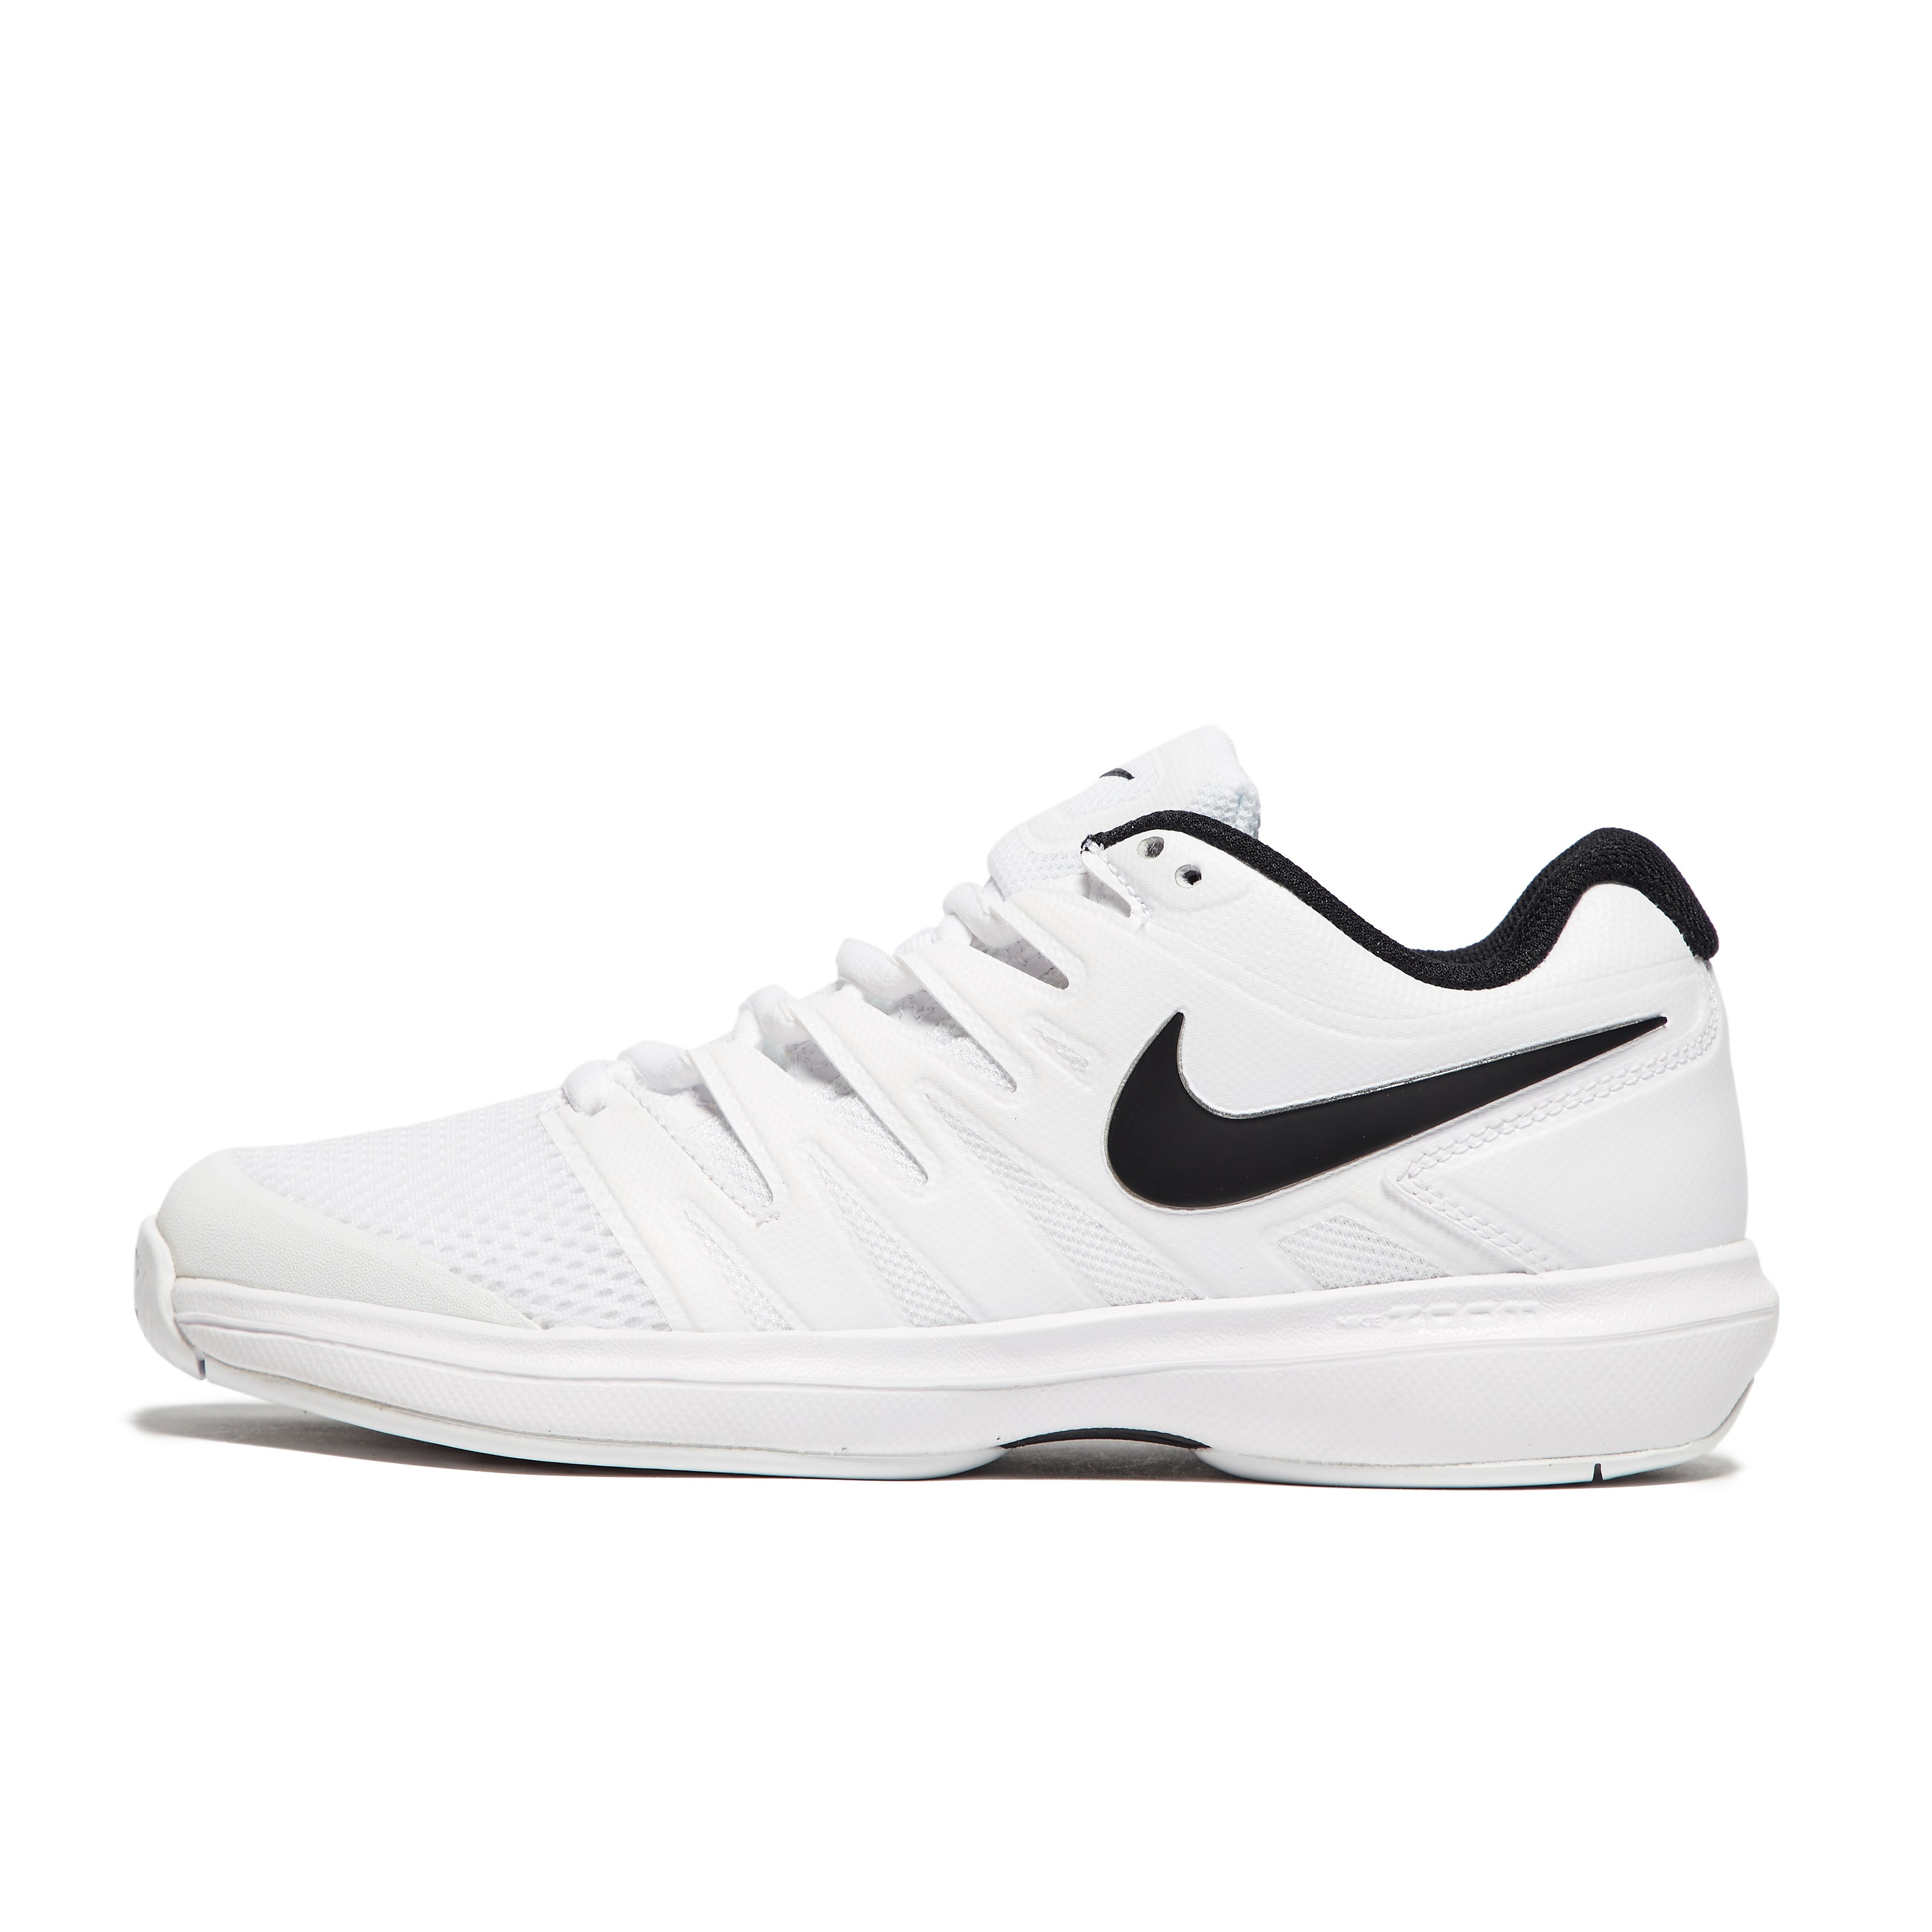 Nike Air Zoom Prestige Men's Tennis Shoes